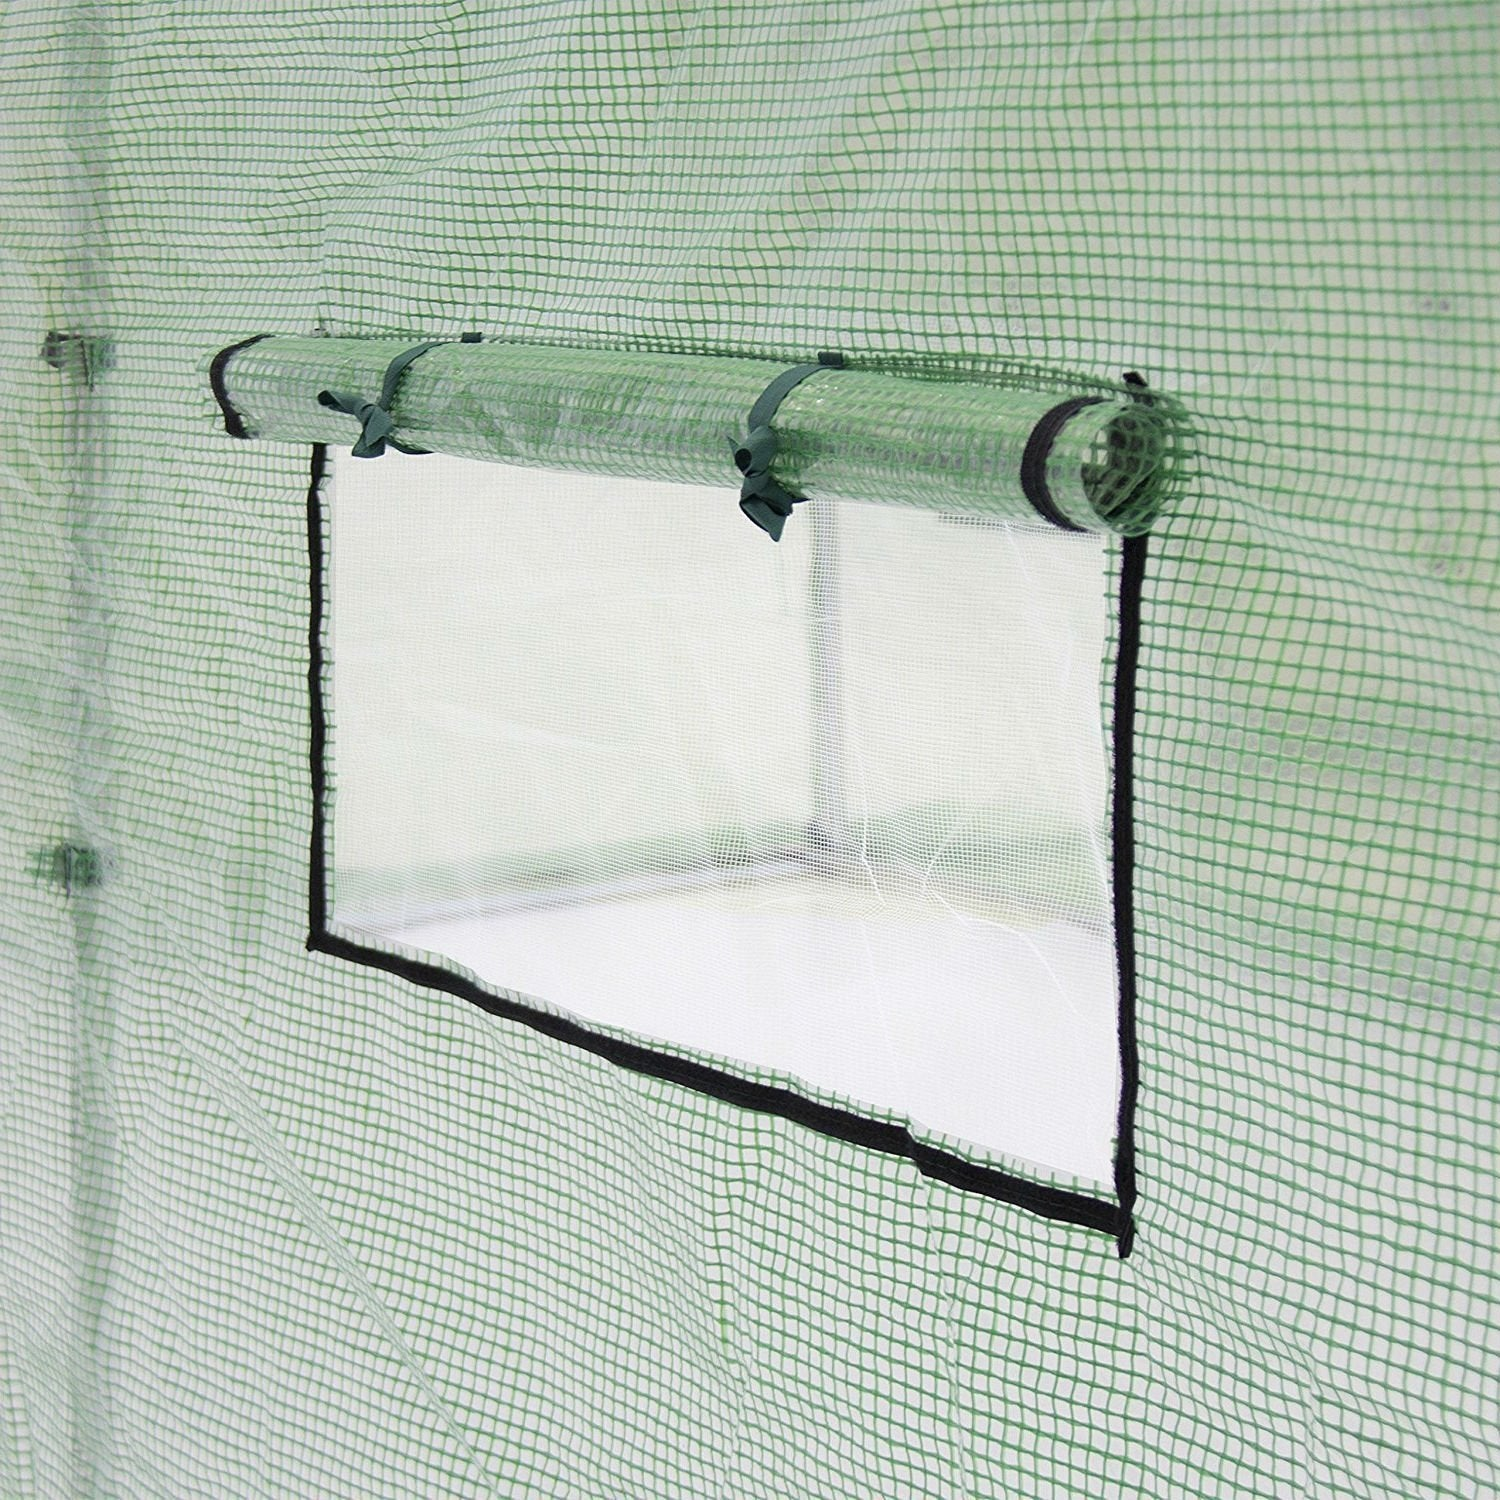 Outdoor 7 x 15 Ft Hoop House Greenhouse with Steel Frame and Green PE Cover.